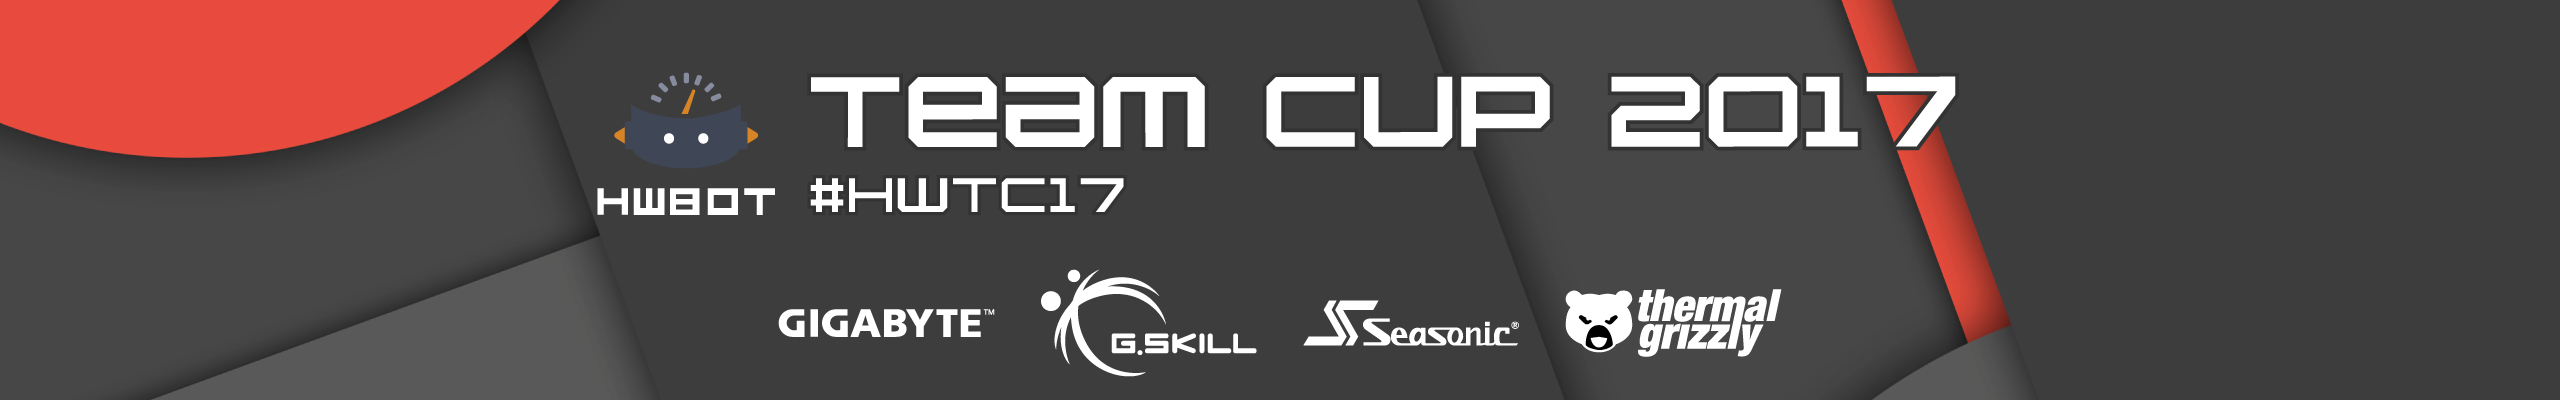 TeamCup17-banner-2560x400.png